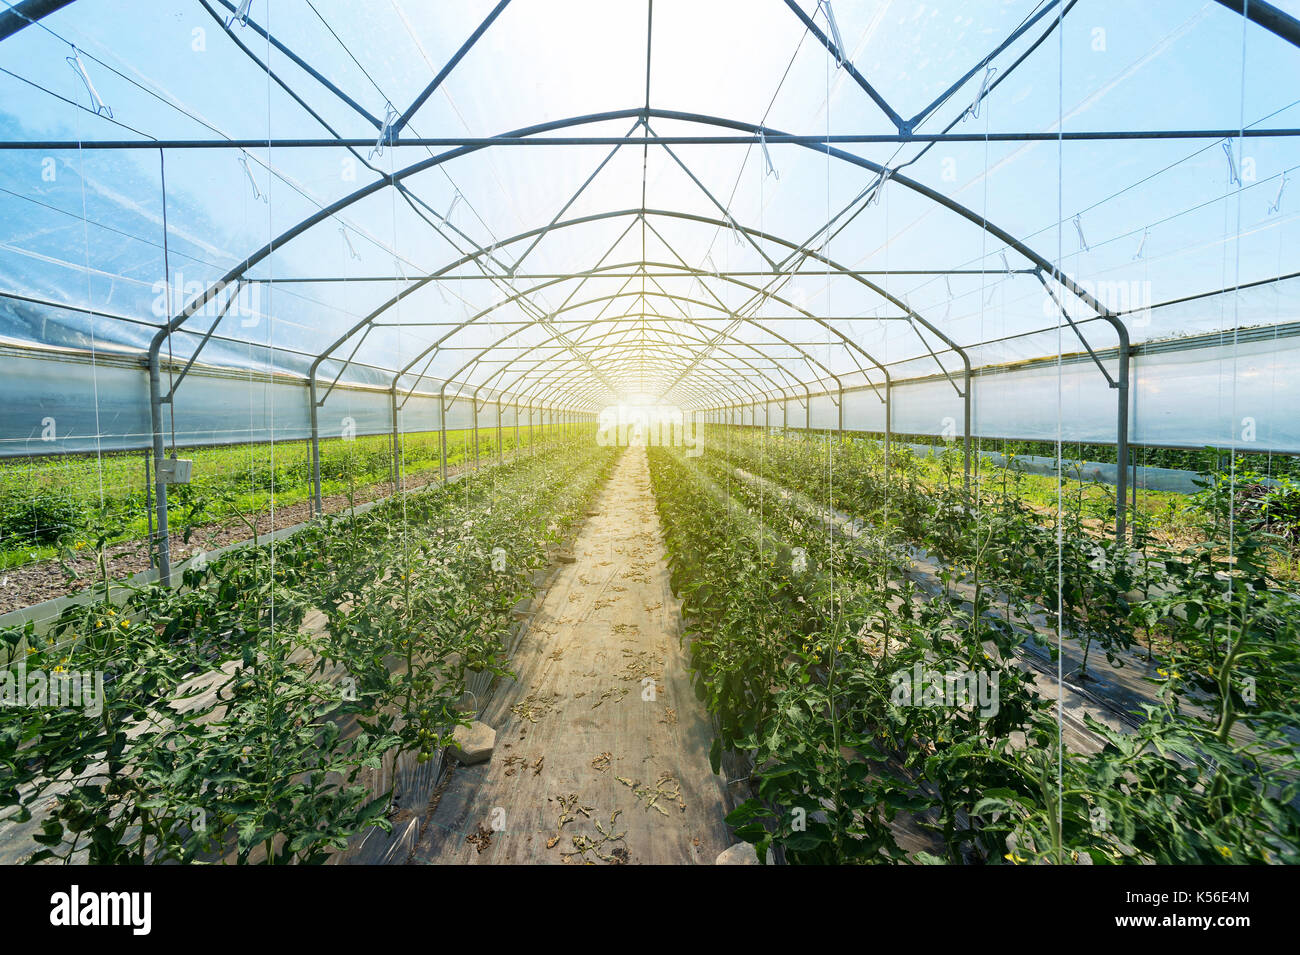 Rows of tomato plants growing inside big industrial greenhouse. Industrial agriculture. - Stock Image